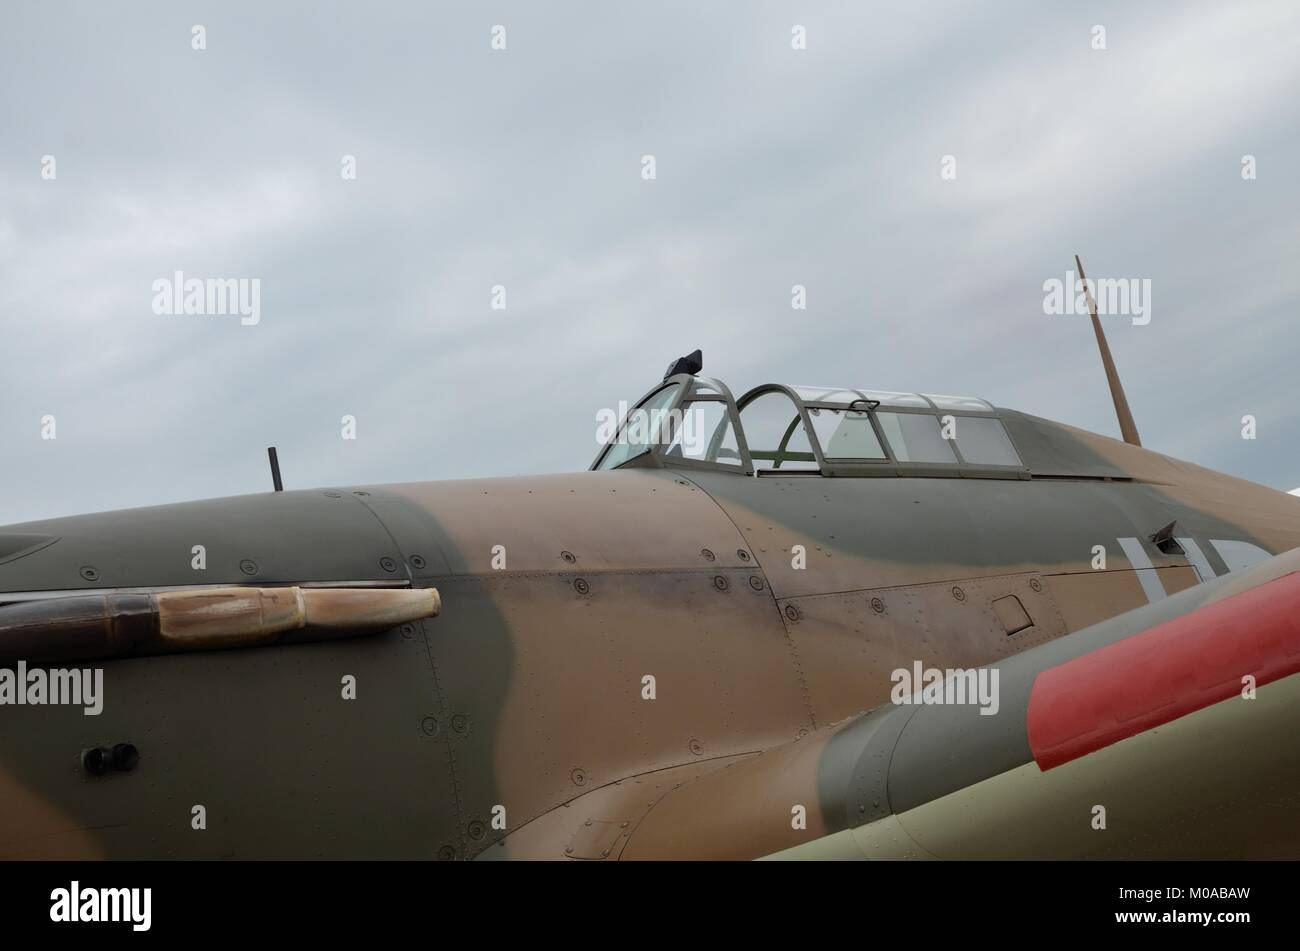 Hawker Hurricane fighter aircraft - Stock Image